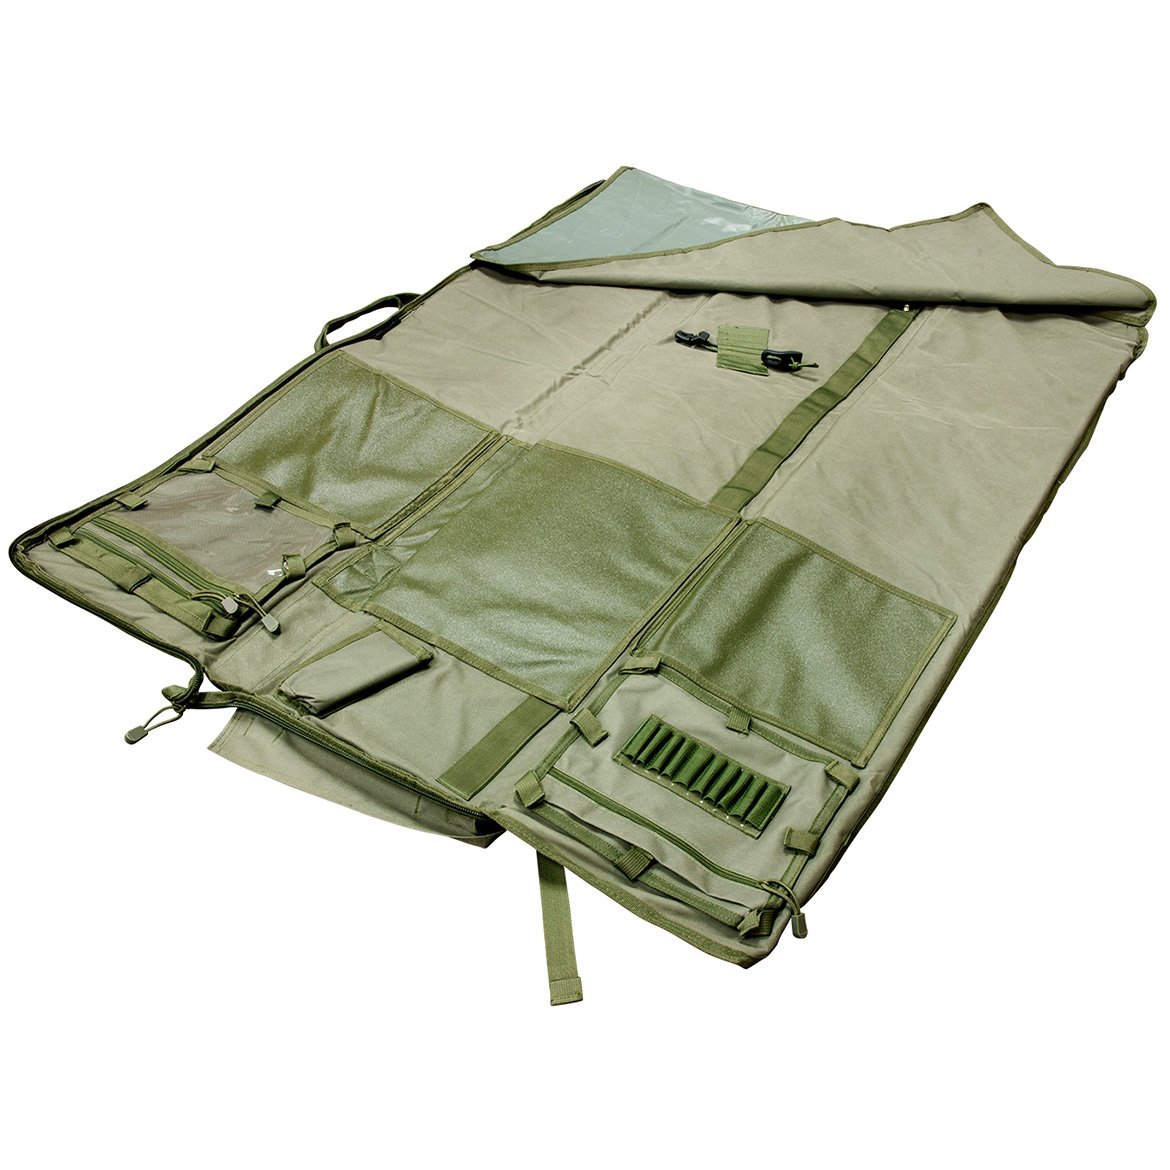 NcStar VISM Rifle Case Shooting Mat